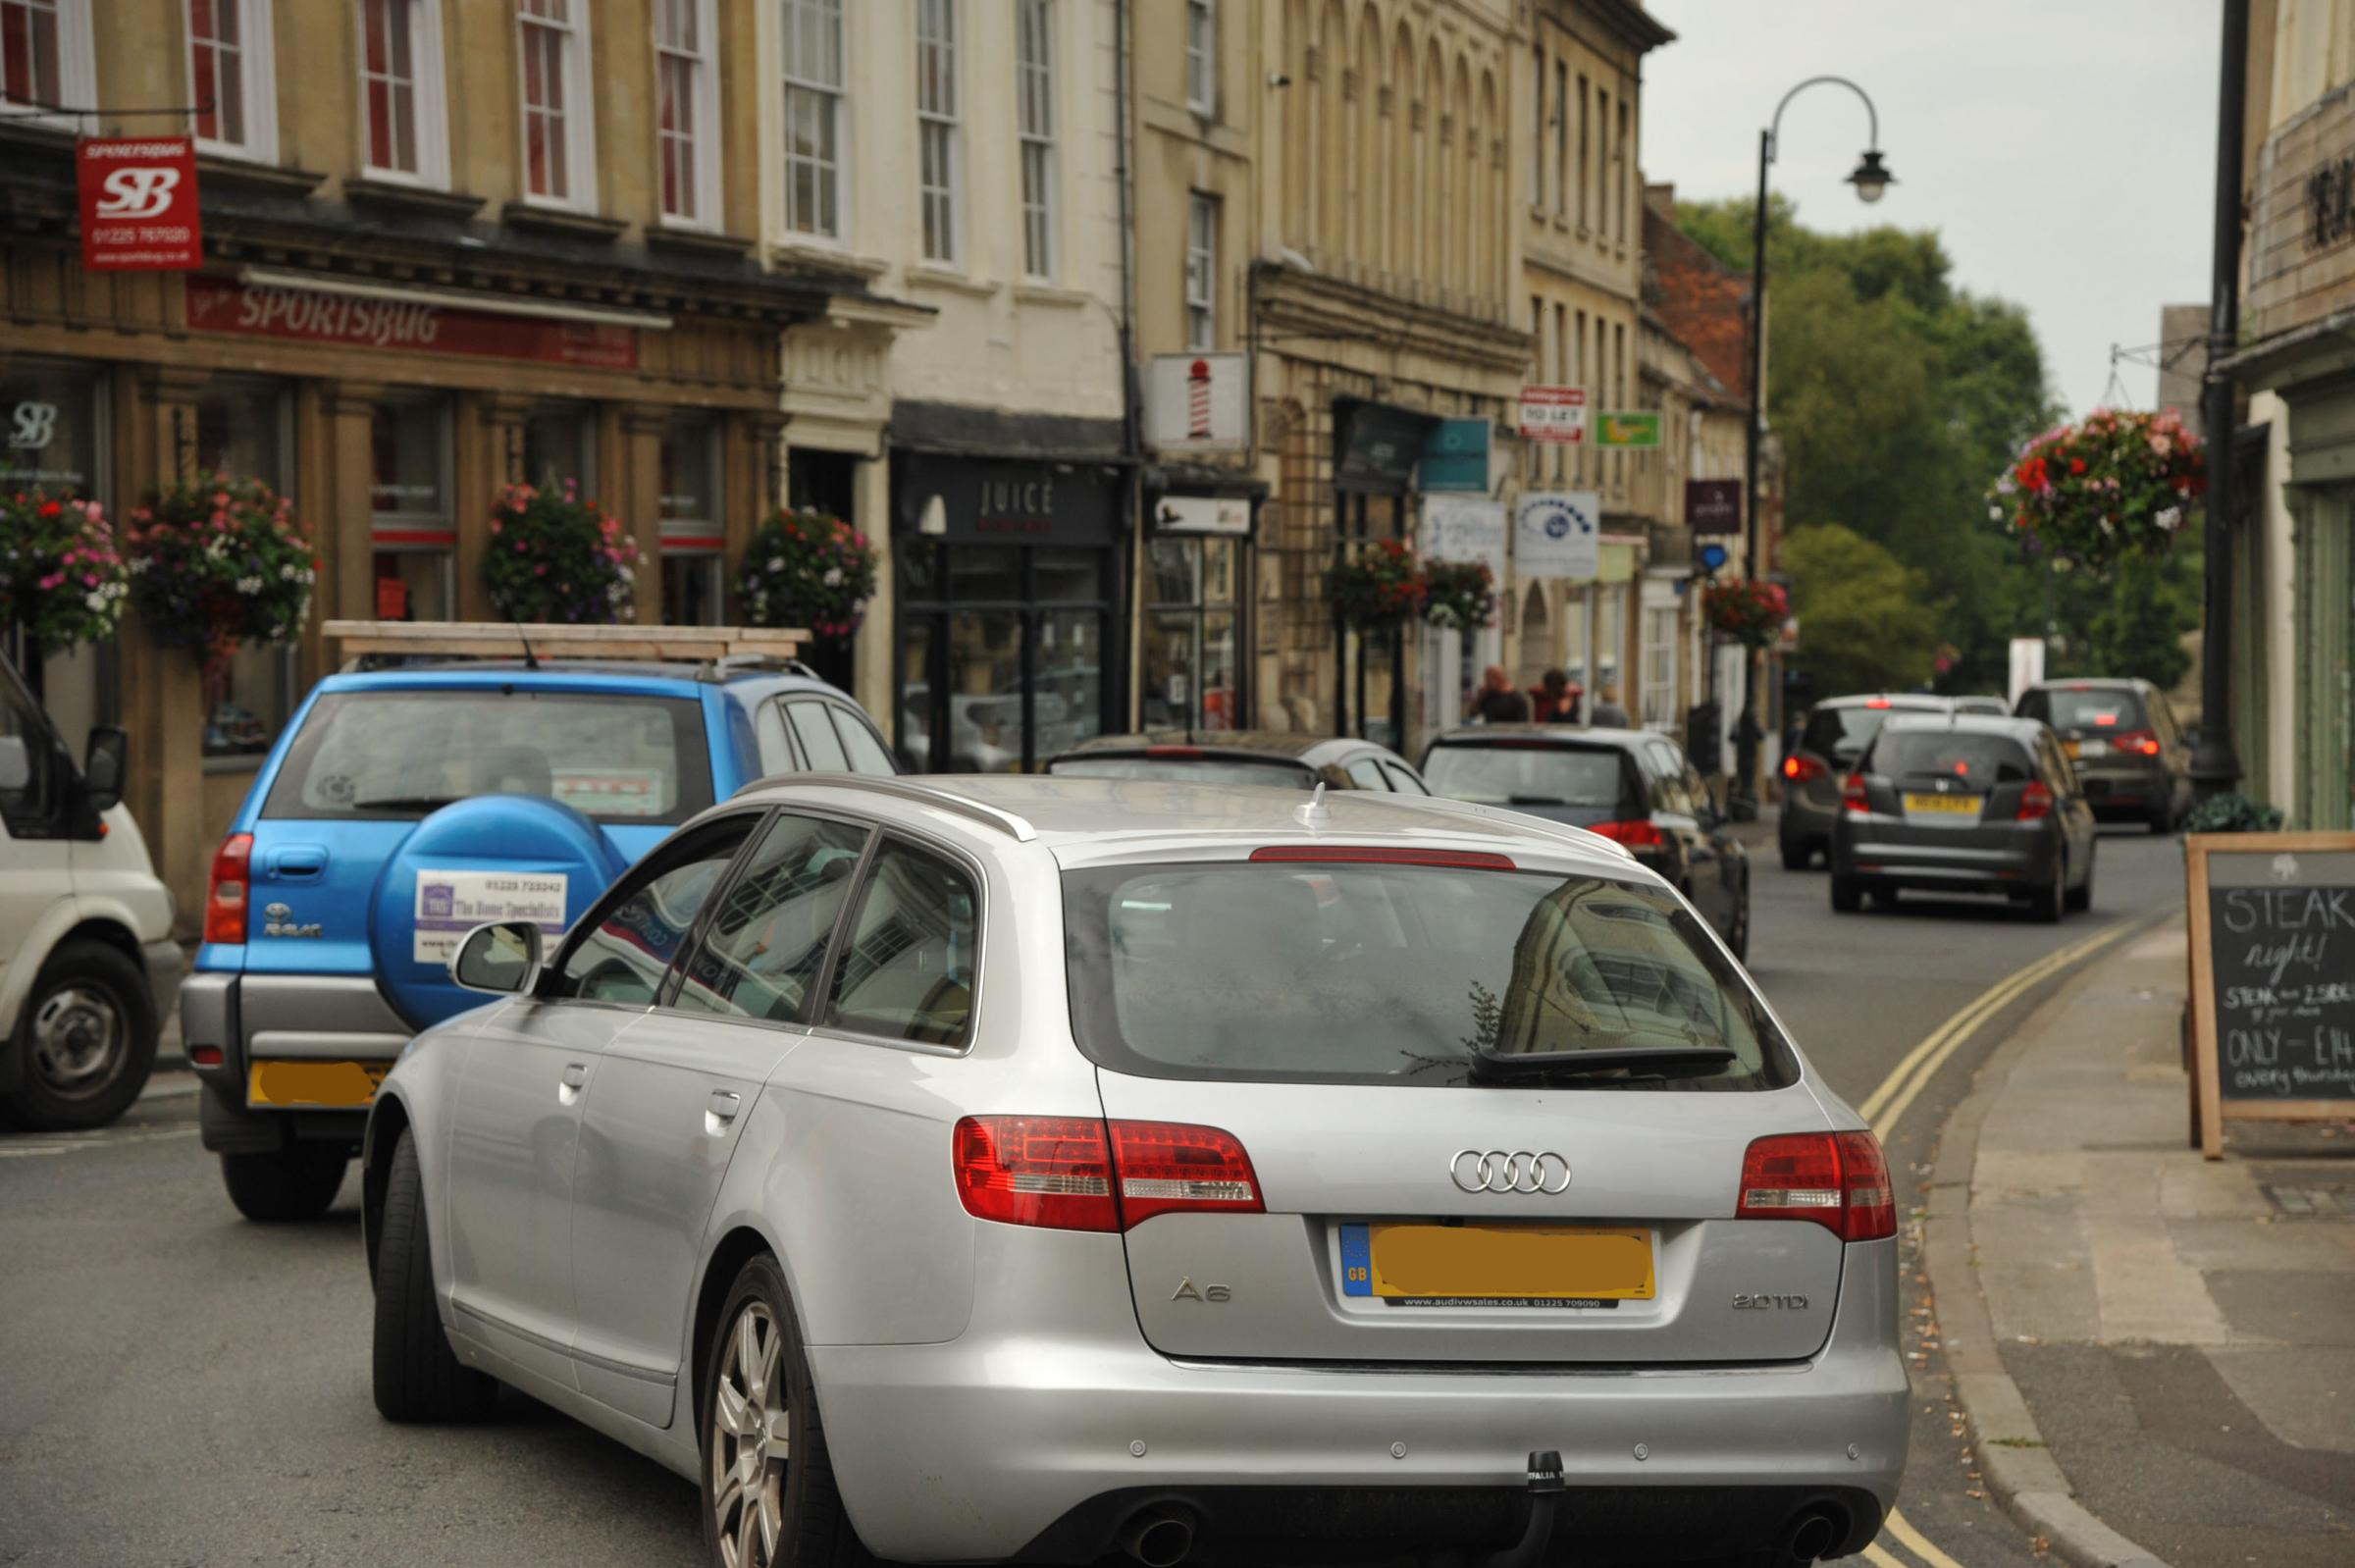 £6m bid could relieve congestion